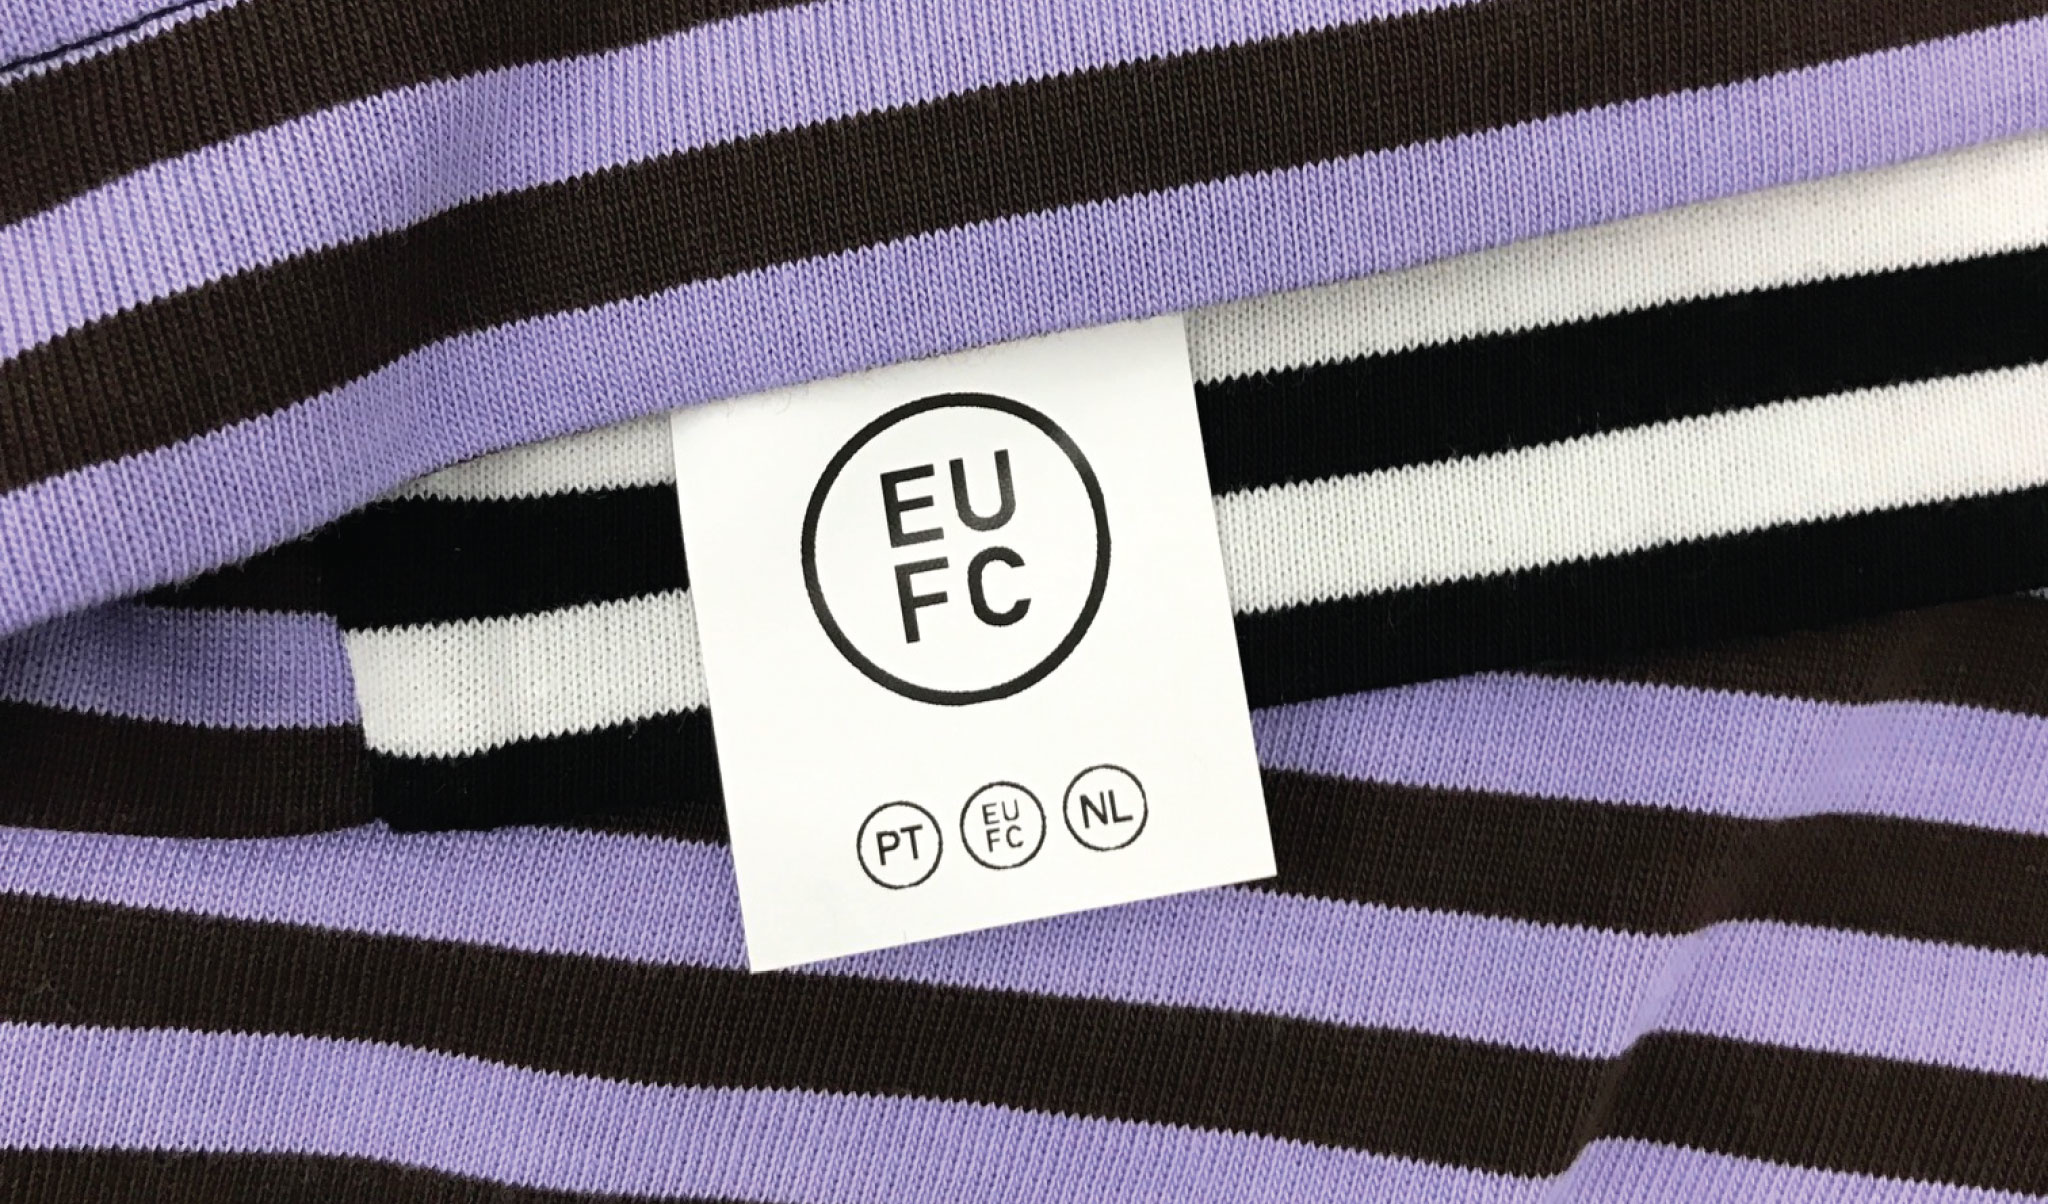 Coming Soon: EU FC - Exclusively at FRESHCOTTON